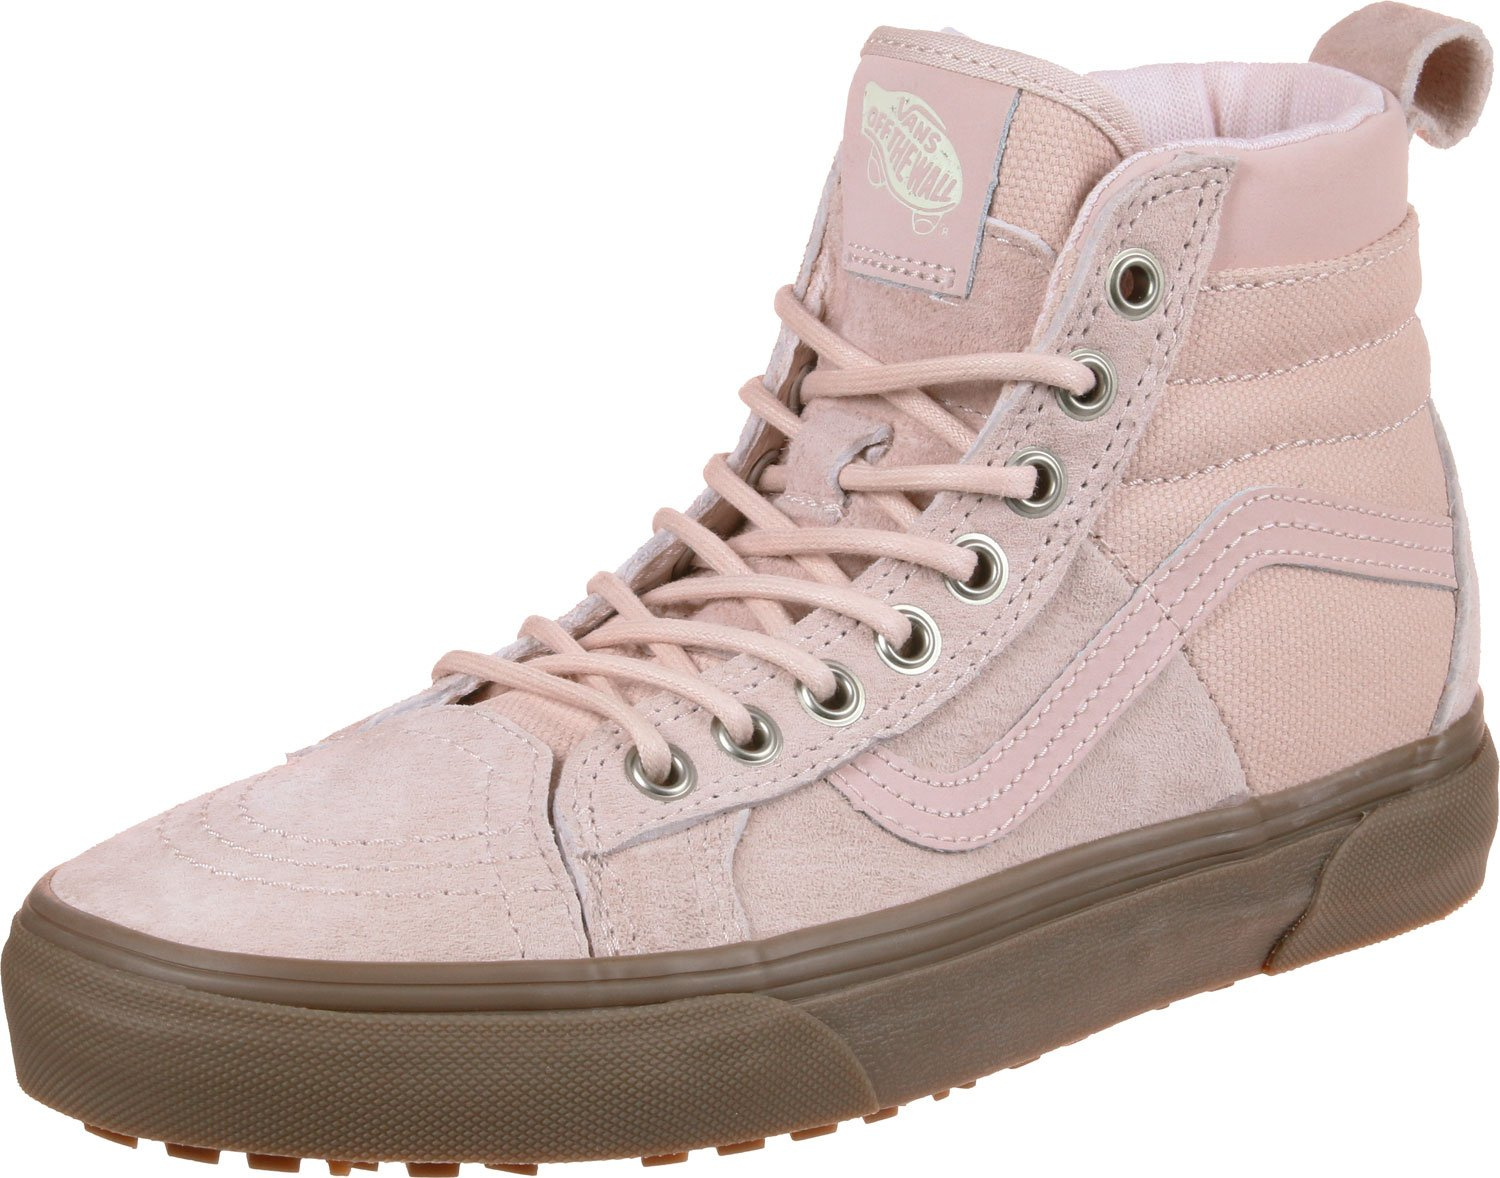 Vans Shoes Sk8-hi Shoes - Sepia Rose/Gum  36 EU|Lila